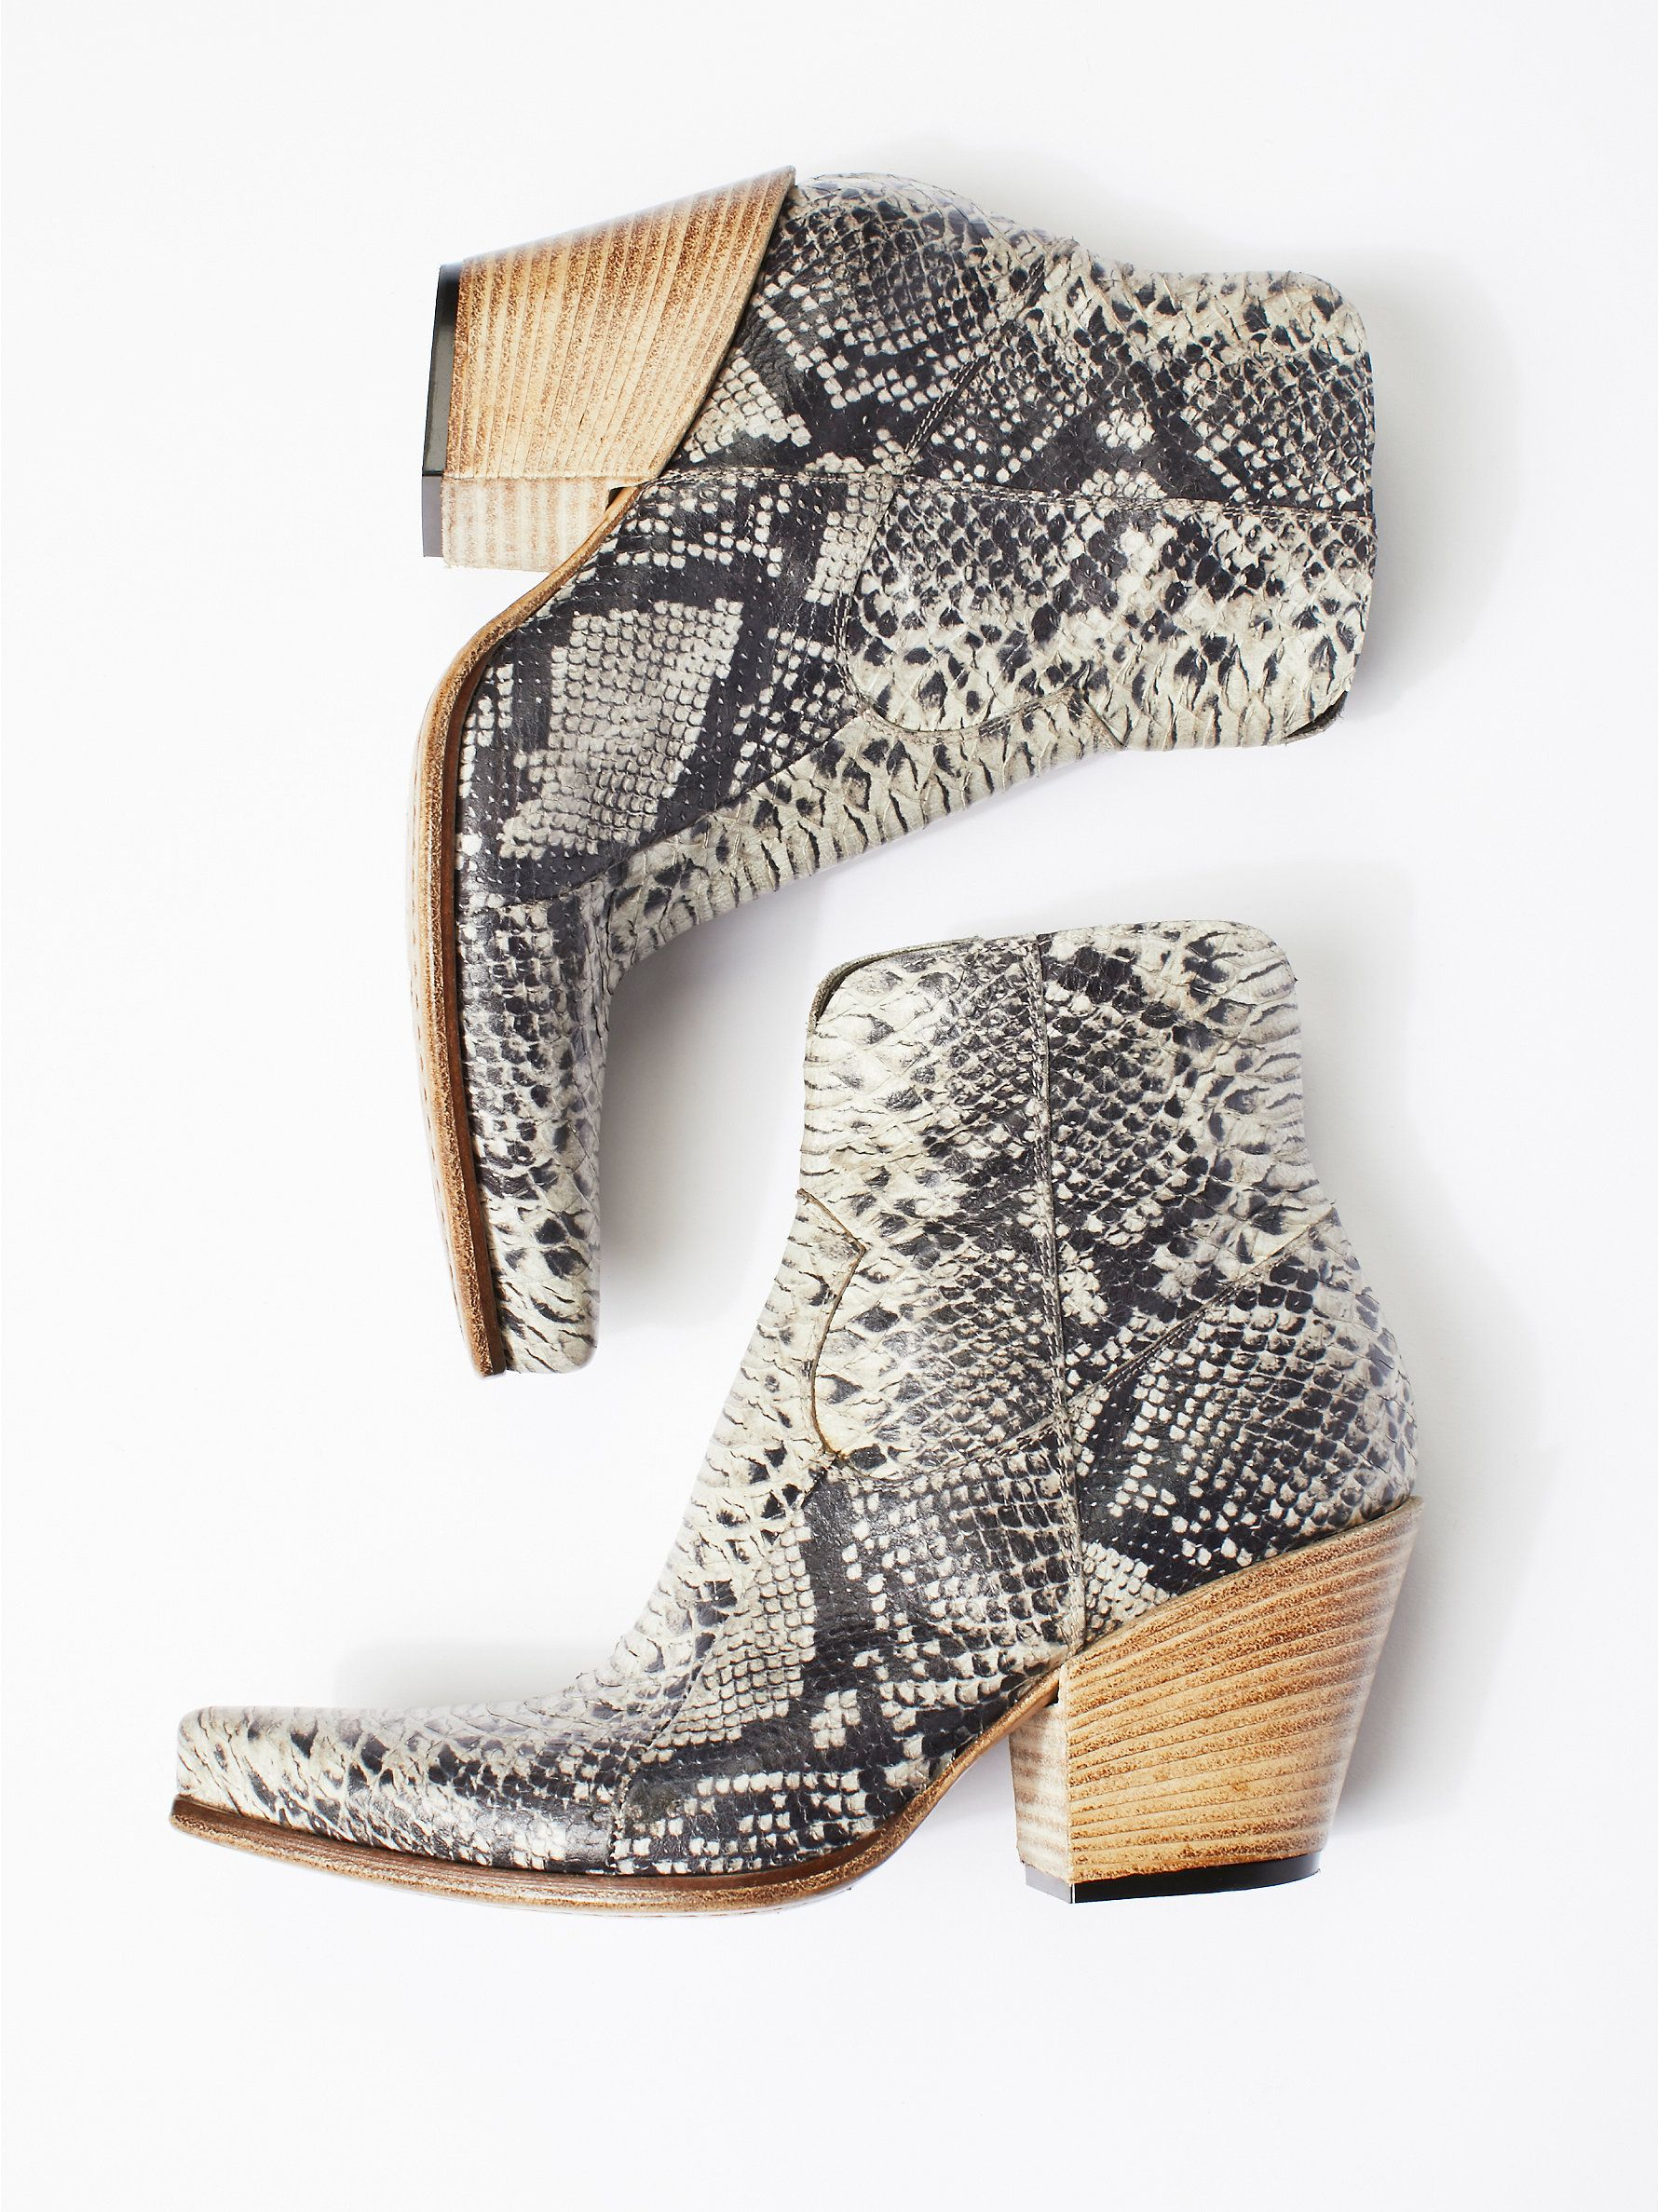 3696c0fe4bd1e South Branch Ankle Boot | Made from the finest Italian leather ...